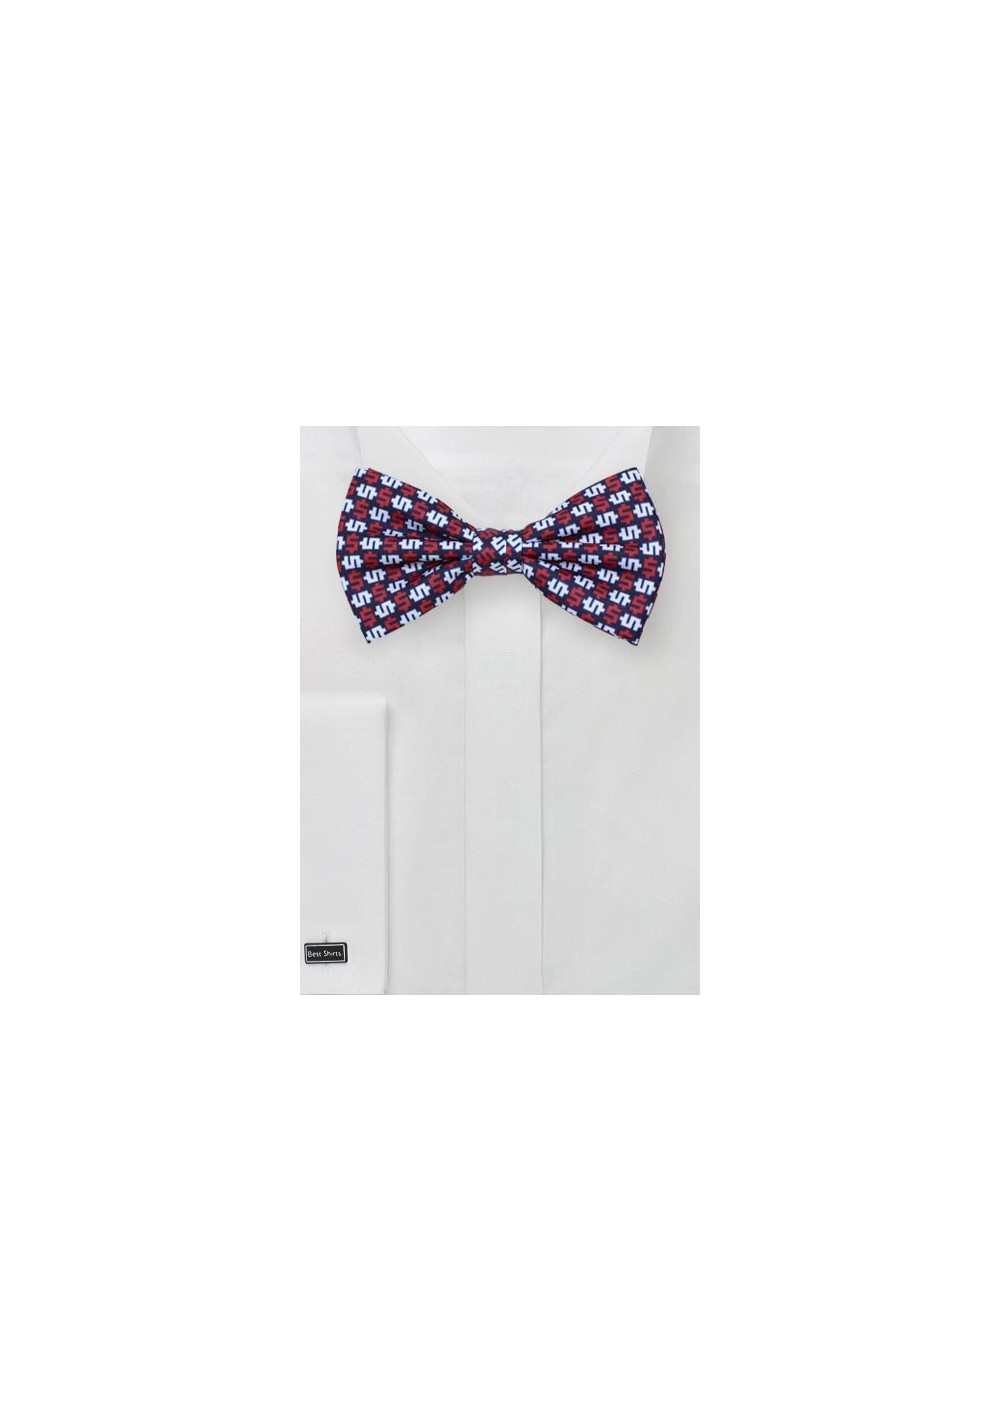 Million Dollar Bowtie